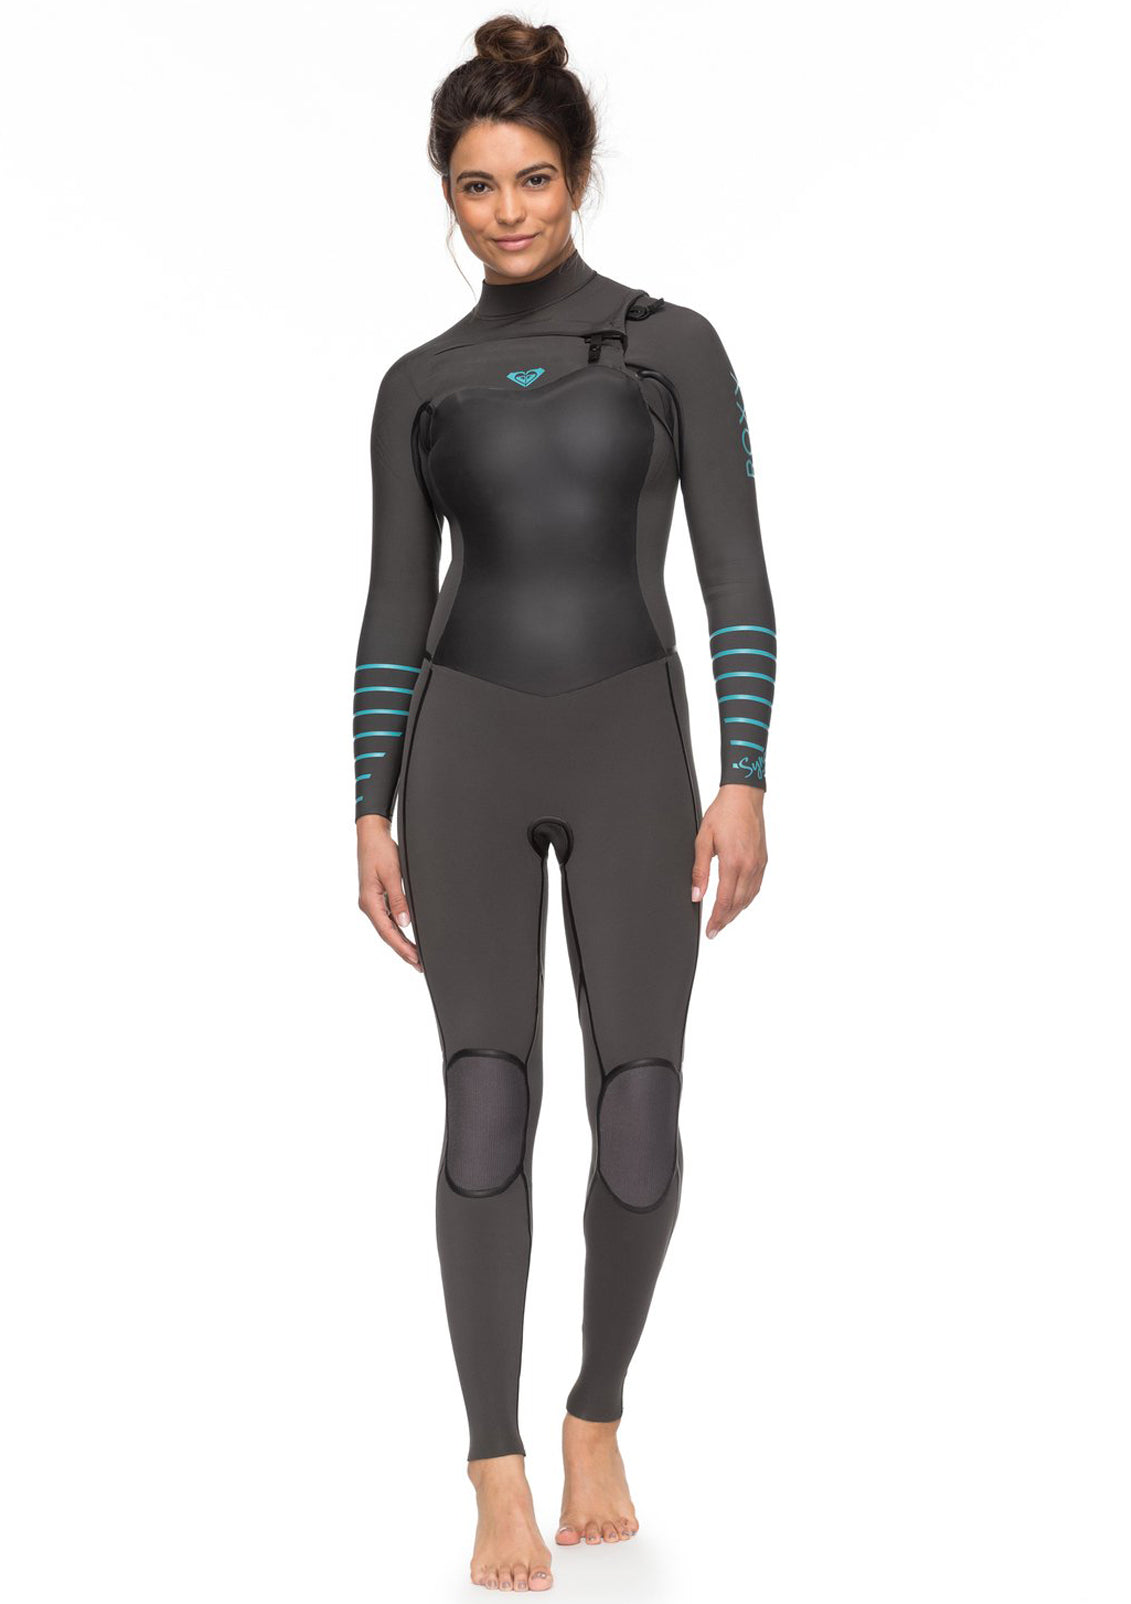 Roxy Womens 4/3 Syncro Plus Chest Zip Wetsuit